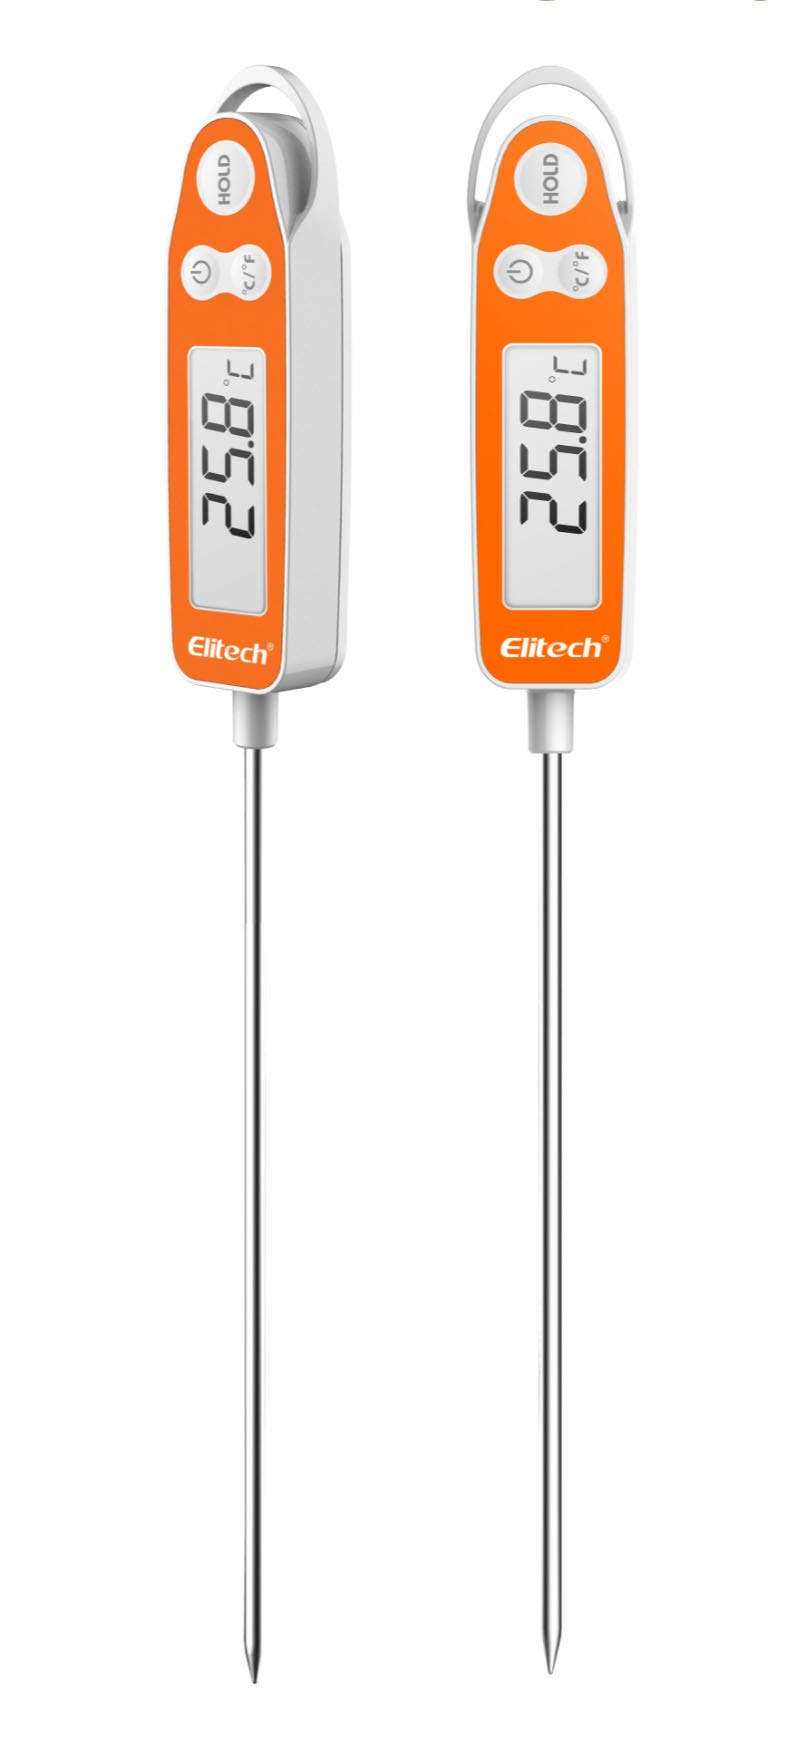 Elitech WT-9A Digital Meat Thermometer [5.9 Inch Long Probe] with Instant Read LCD Screen Hold Function for Kitchen Cooking Food Grill BBQ Meat Candy Milk Water